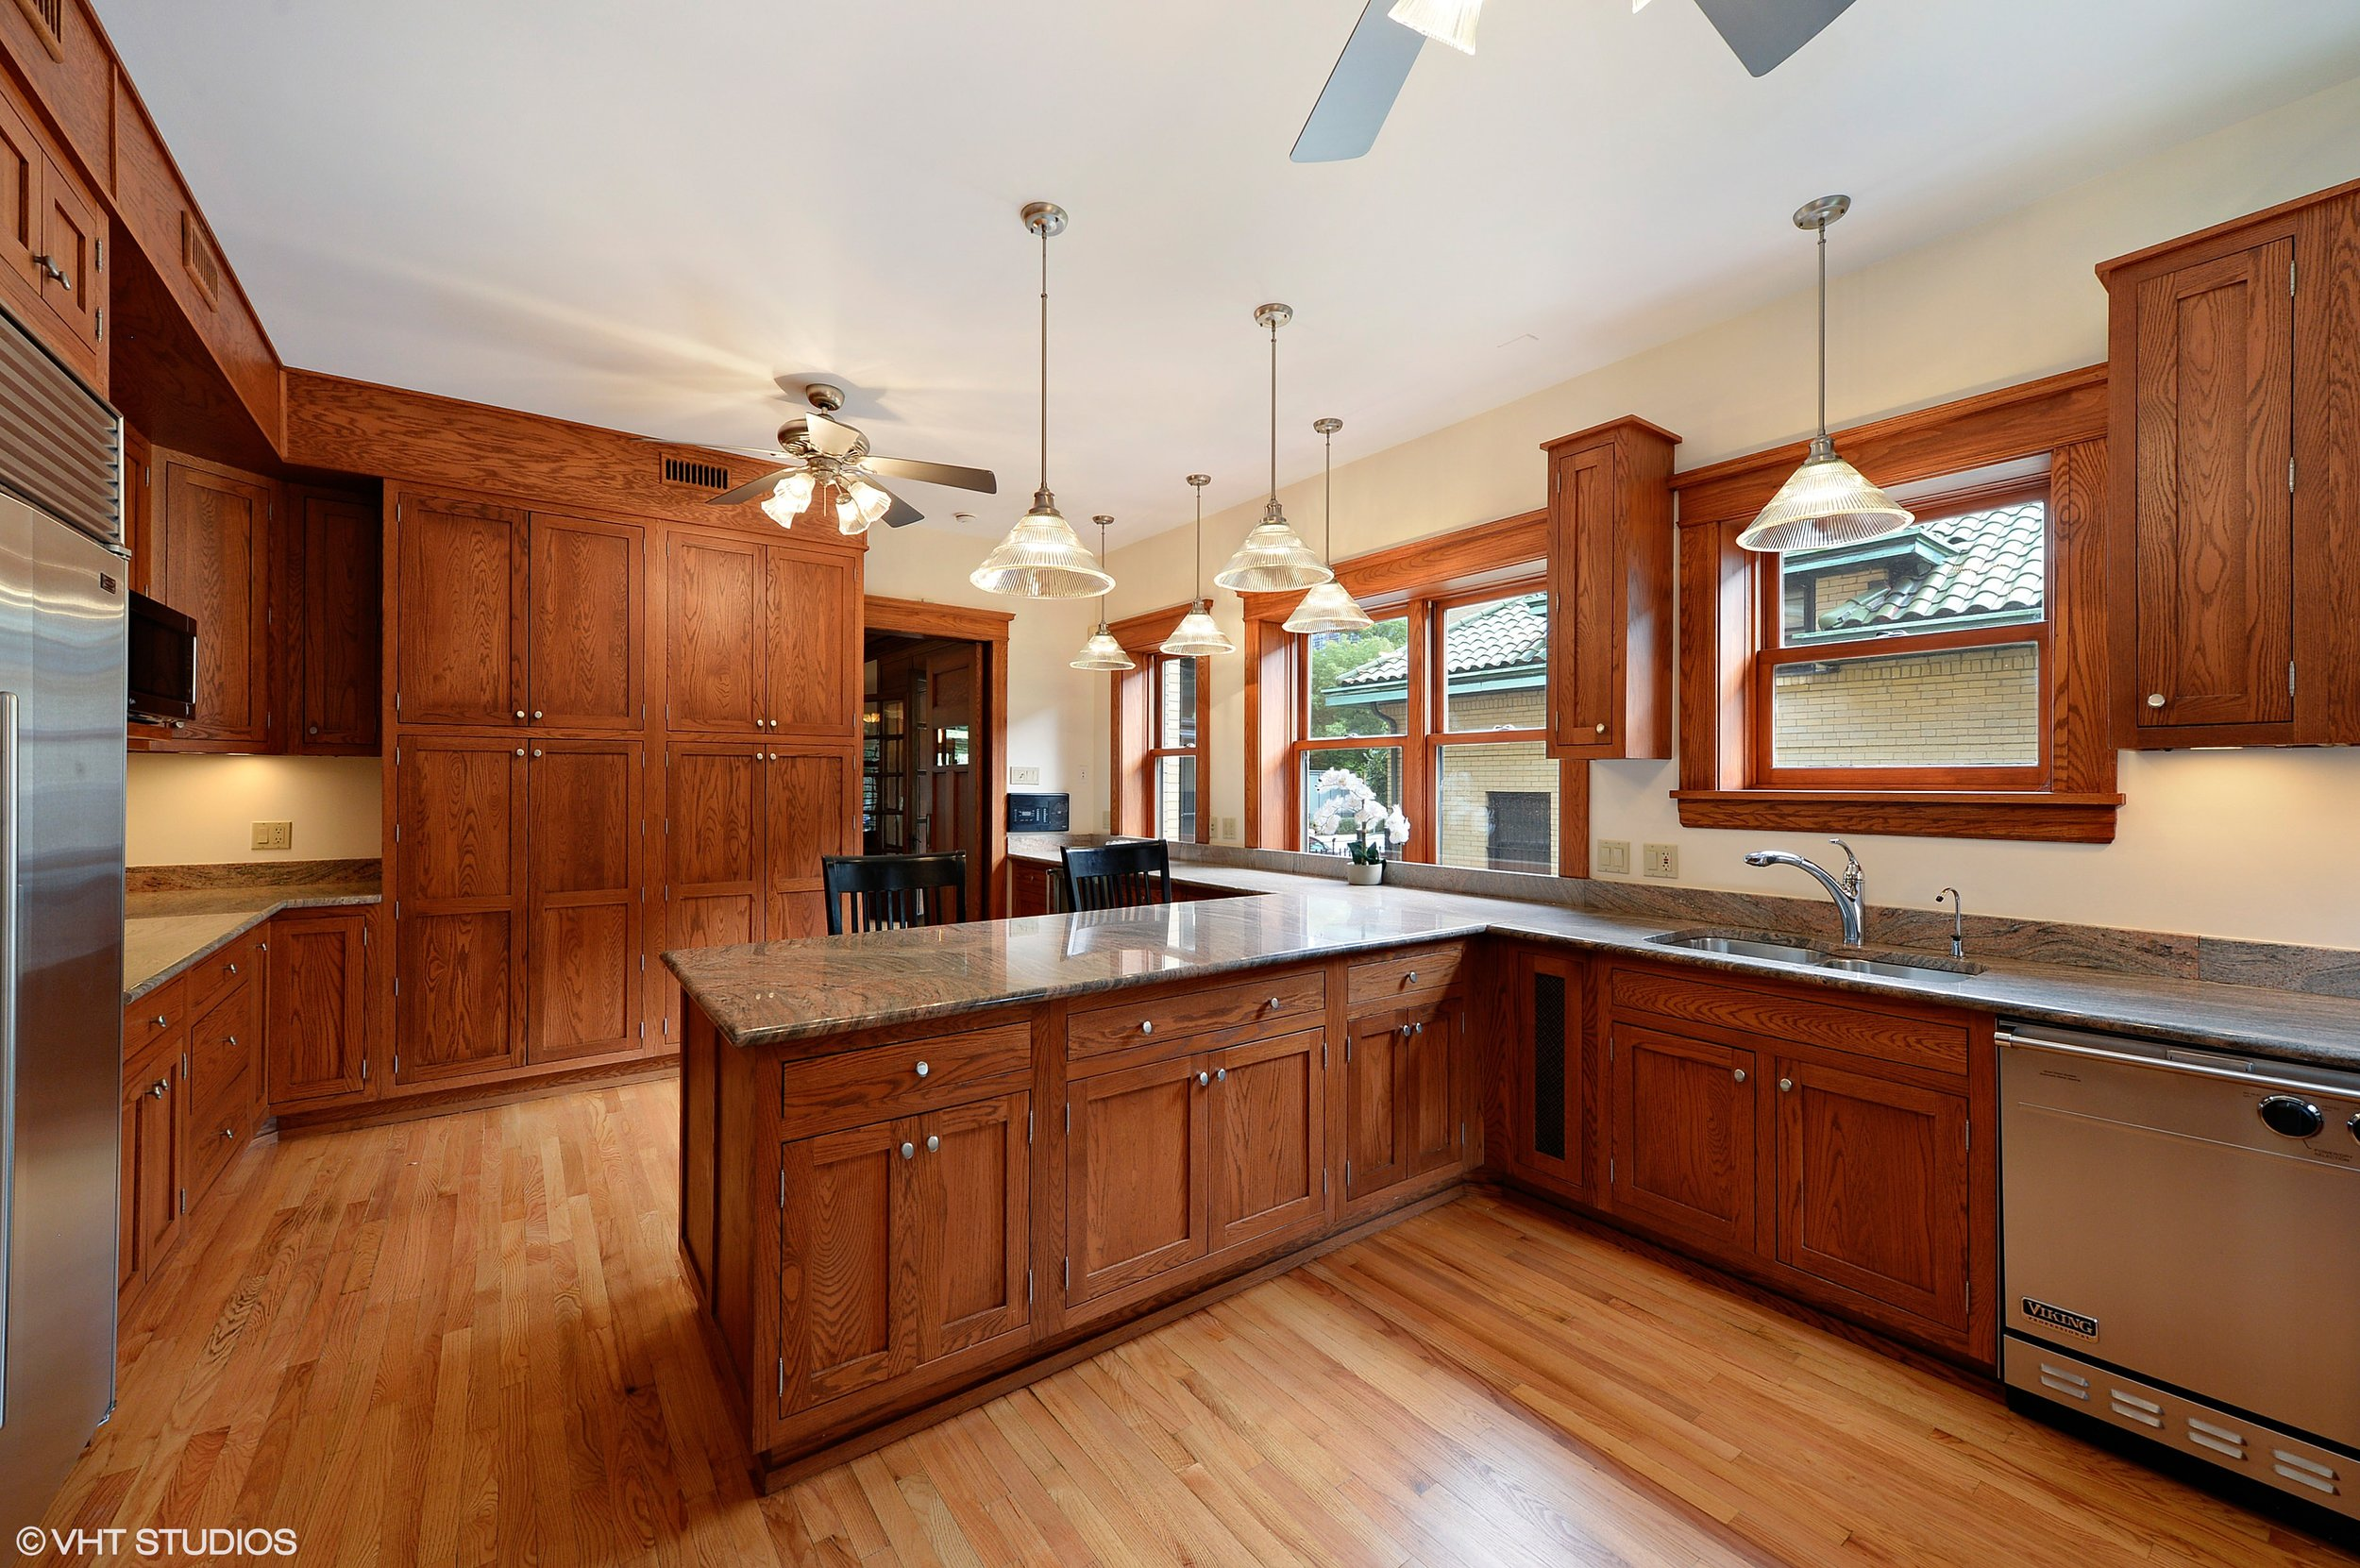 07_805WestJuniorTer_5_Kitchen_HiRes.jpg